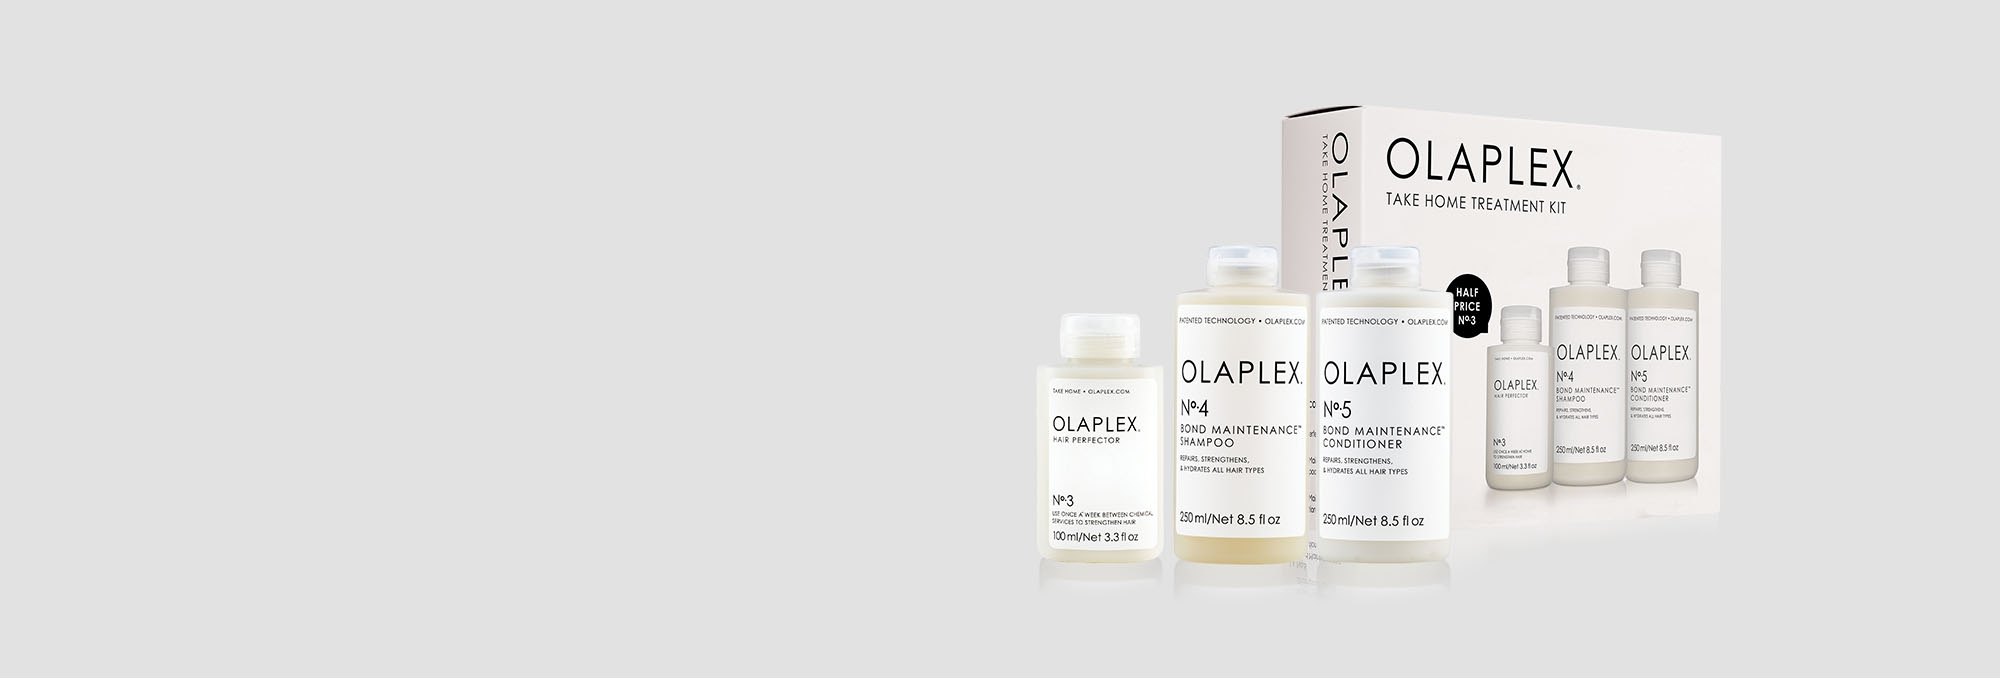 <span style='display: block;'>Now Available</span> <span style='font-size:60%; display:block;'>Olaplex Take Home Treatment Kit</span> <span class='micro salon-button'><a href='https://olaplex.com.au/members'>Salons - Shop Now</a></span> <span class='micro'><a href='https://consumer.olaplex.com.au/shop'>Consumers - Buy Online</a></span>